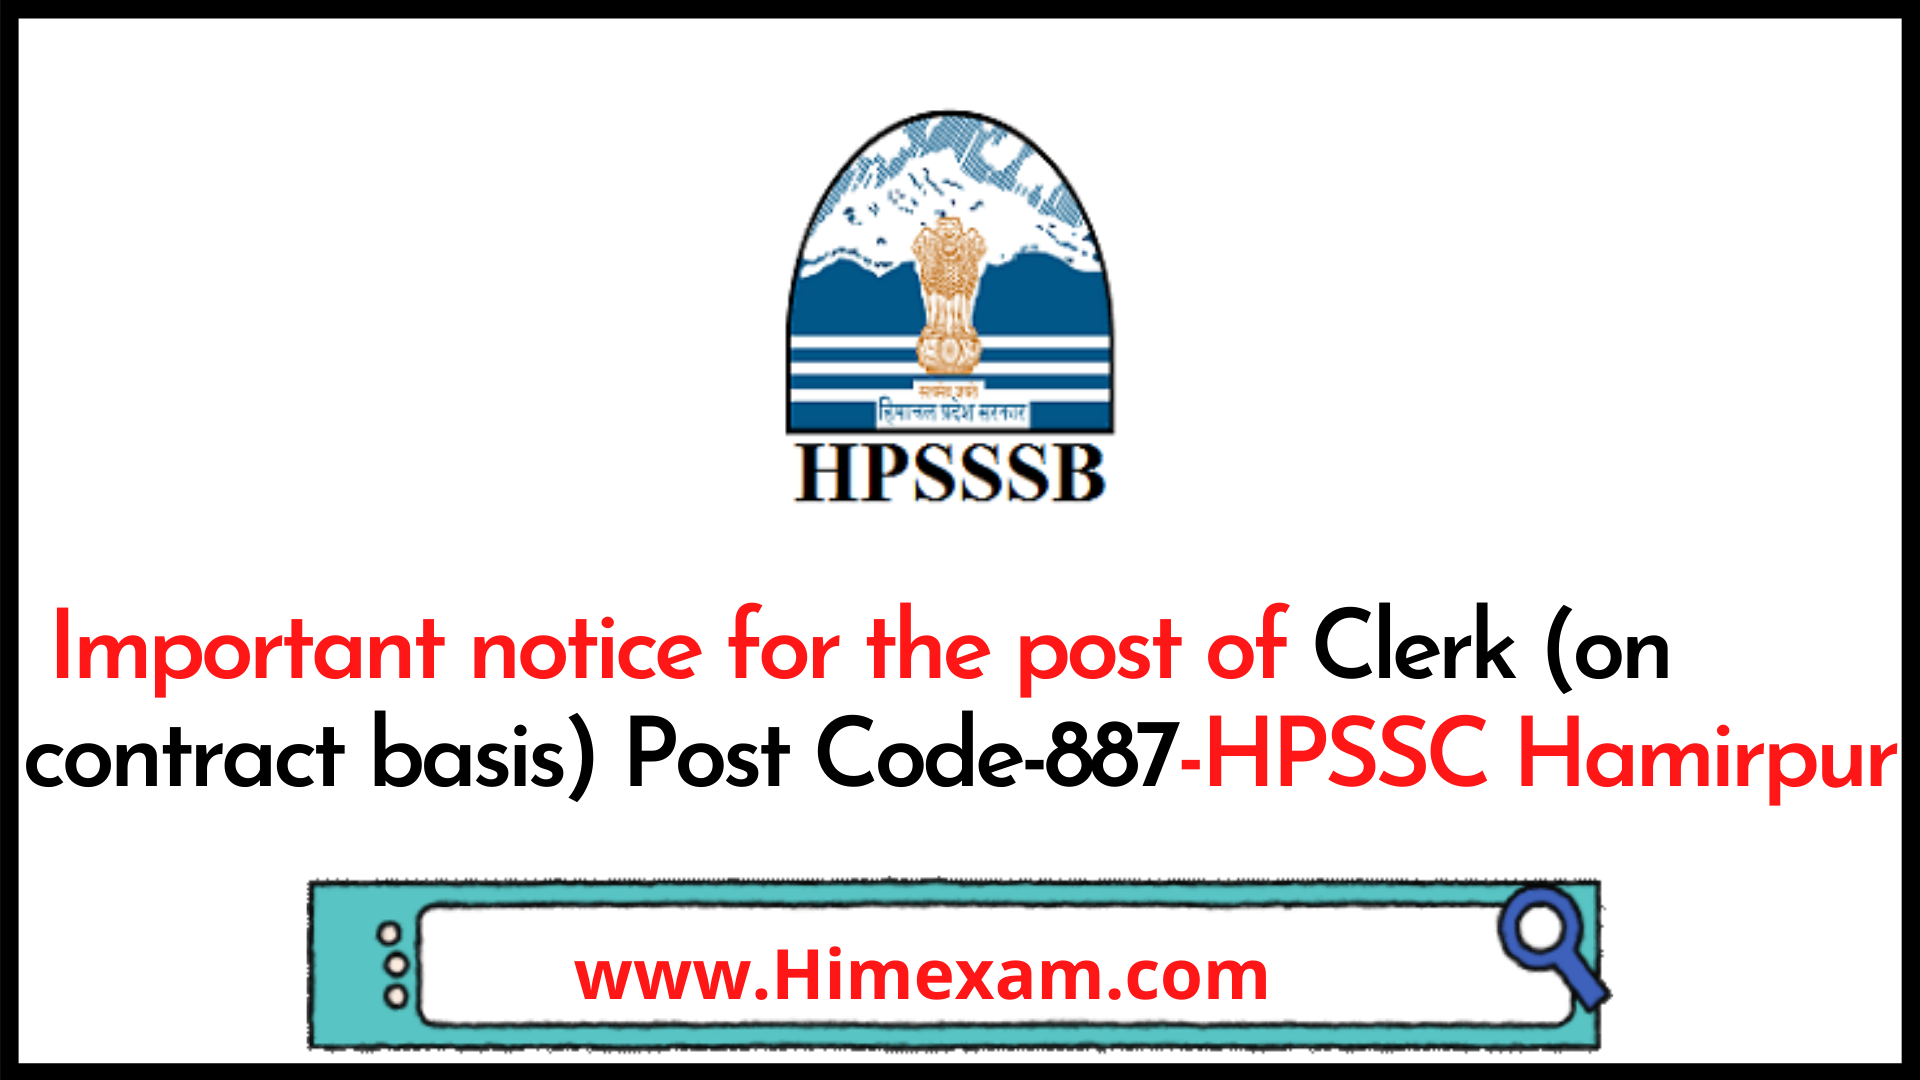 Important notice for the post of Clerk (on contract basis) Post Code-887-HPSSC Hamirpur